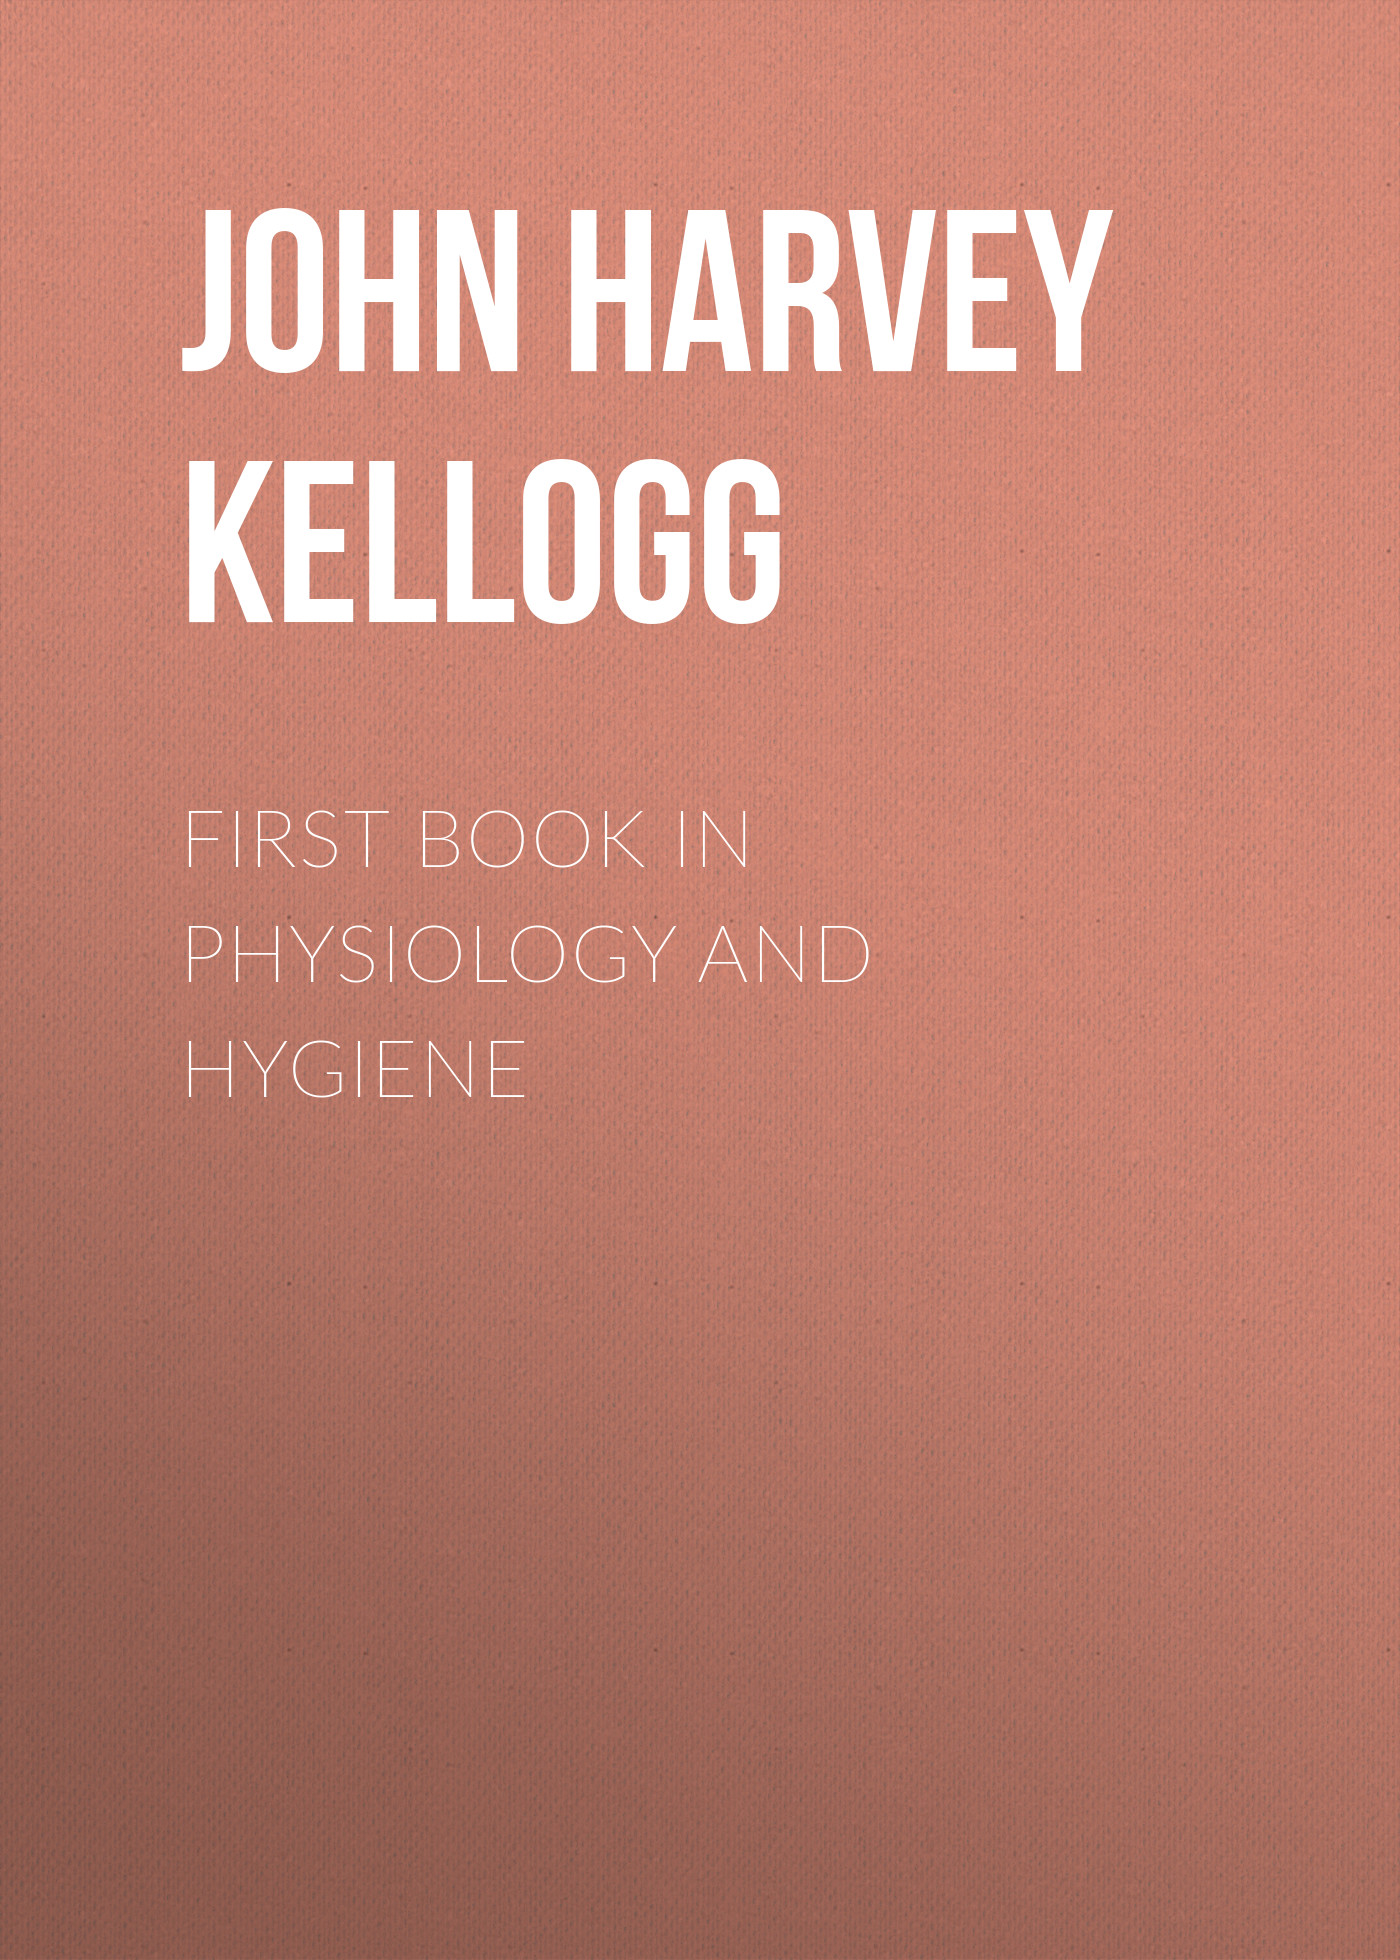 John Harvey Kellogg First Book in Physiology and Hygiene christopher columbus